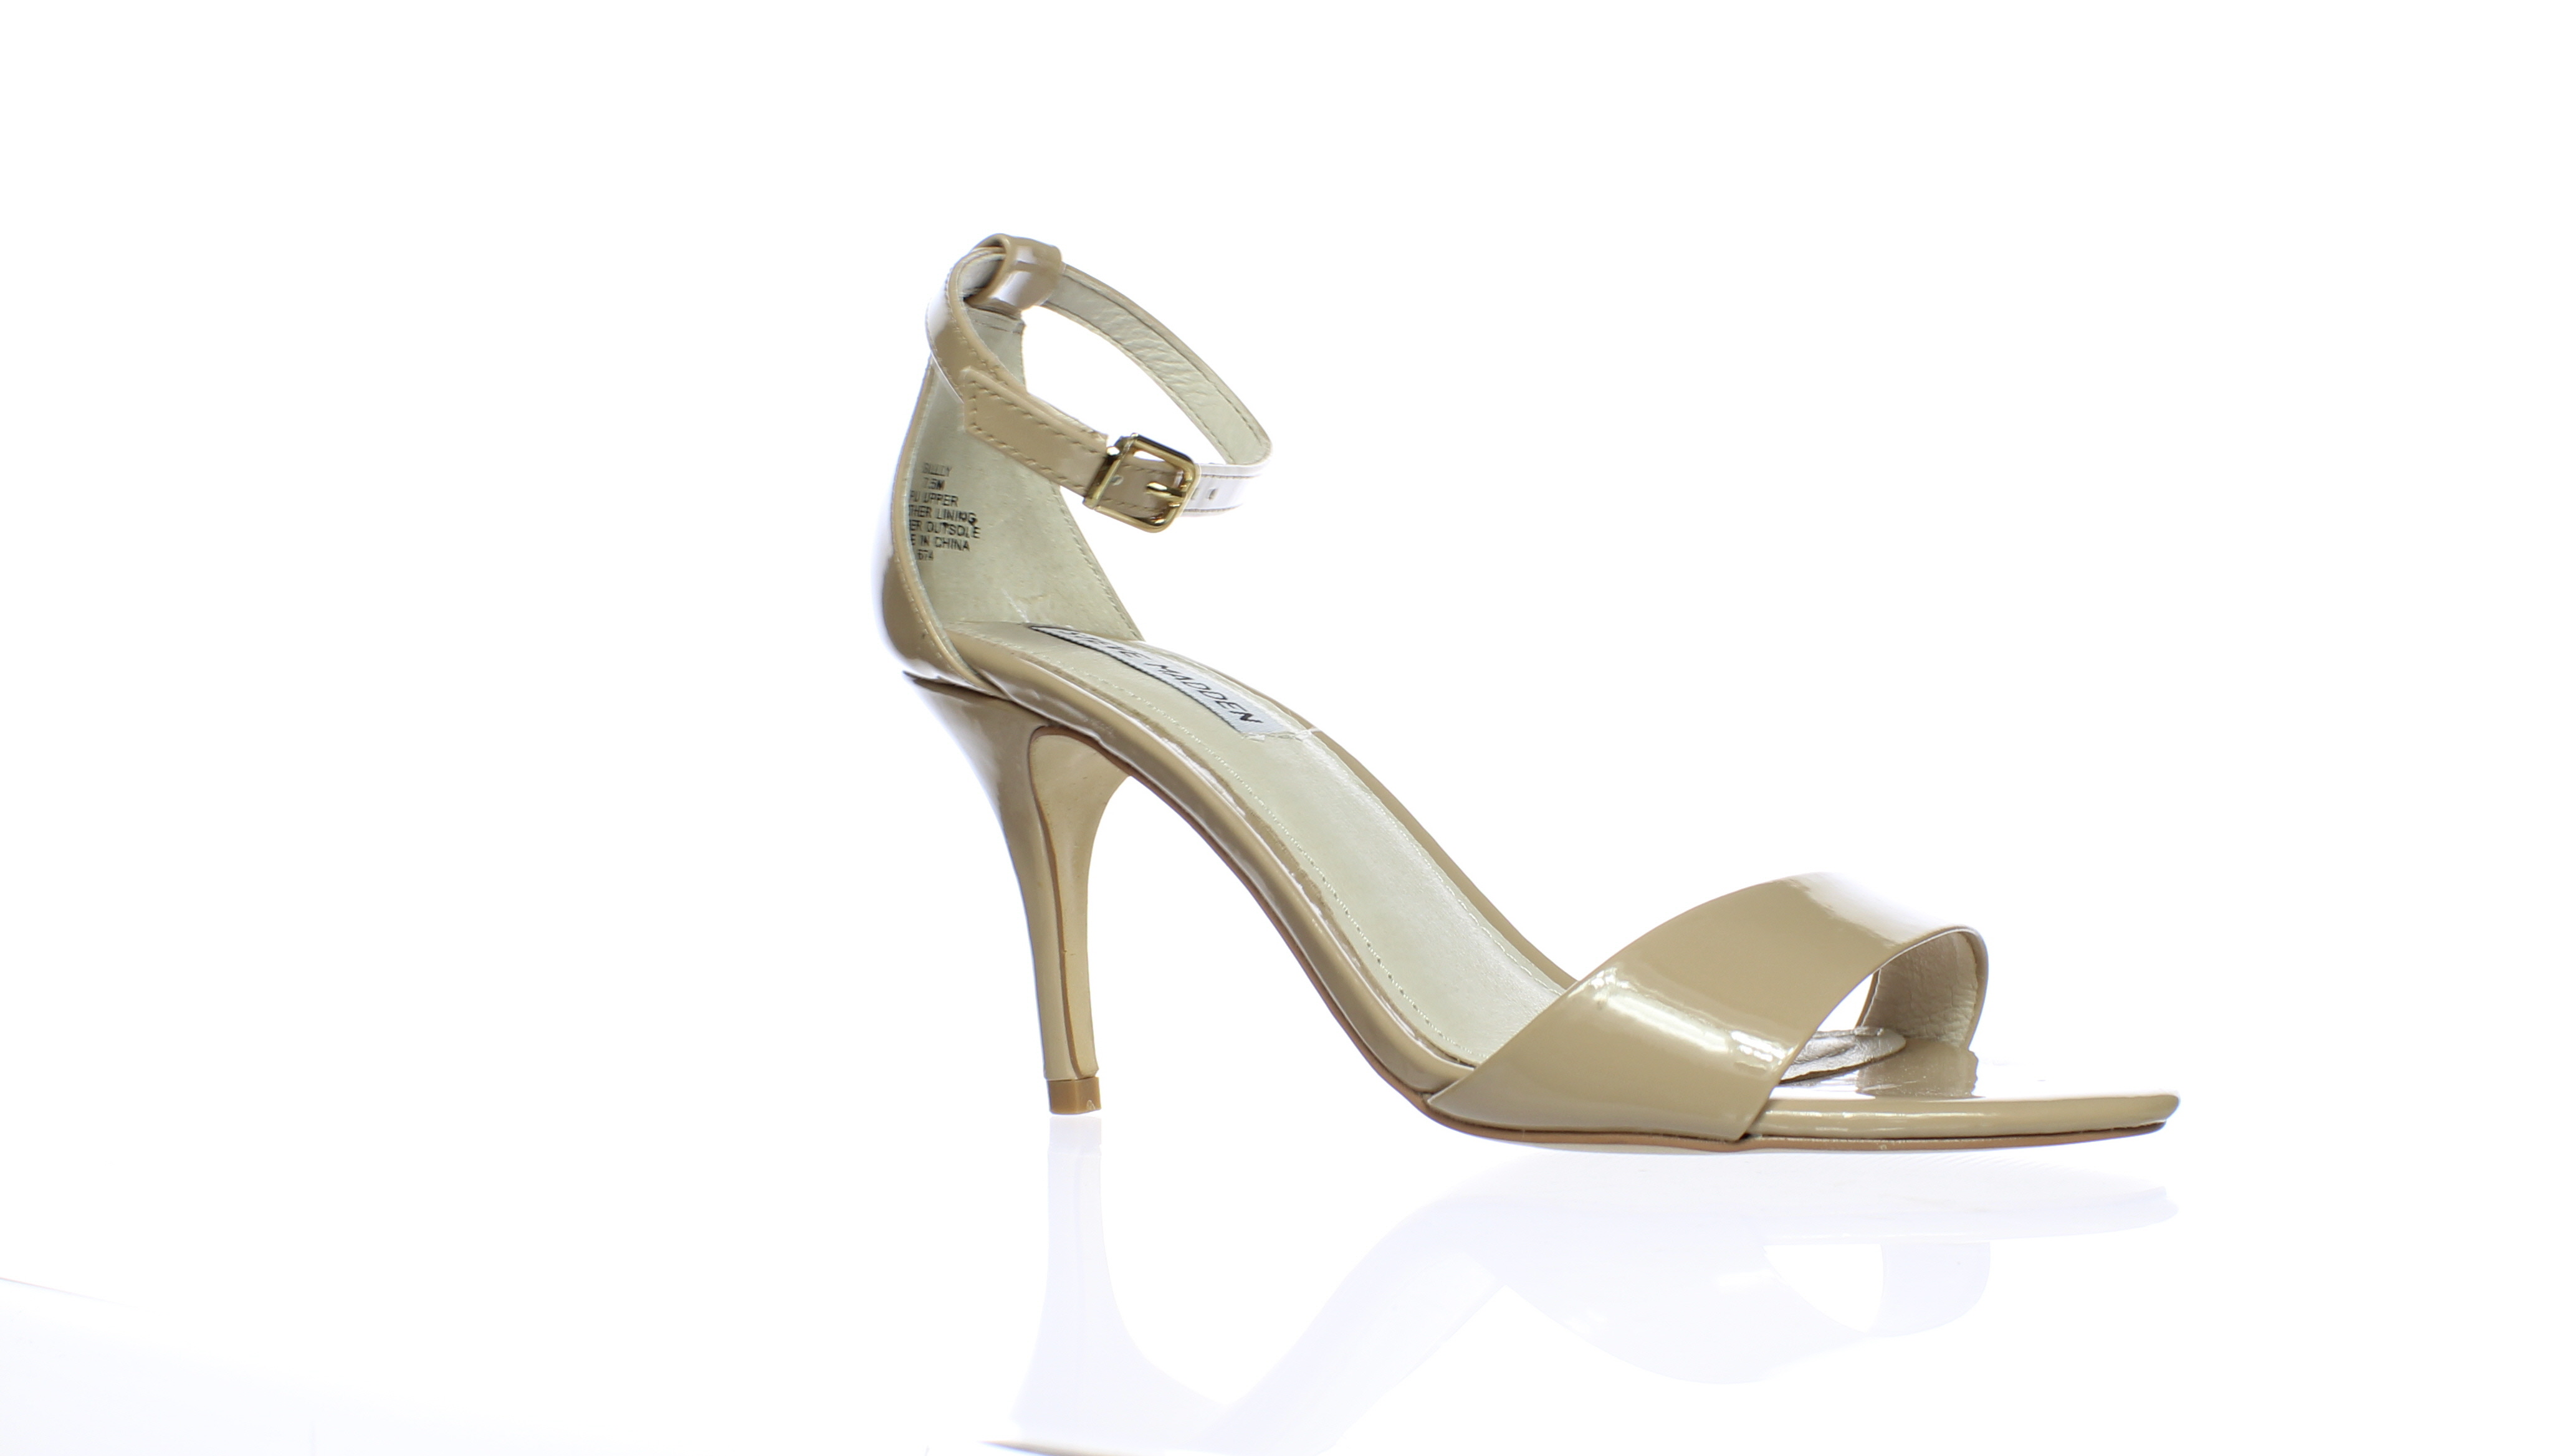 2f64a1d6dad Steve Madden Womens Sillly Blush Patent Ankle Strap Heels Size 7.5 ...